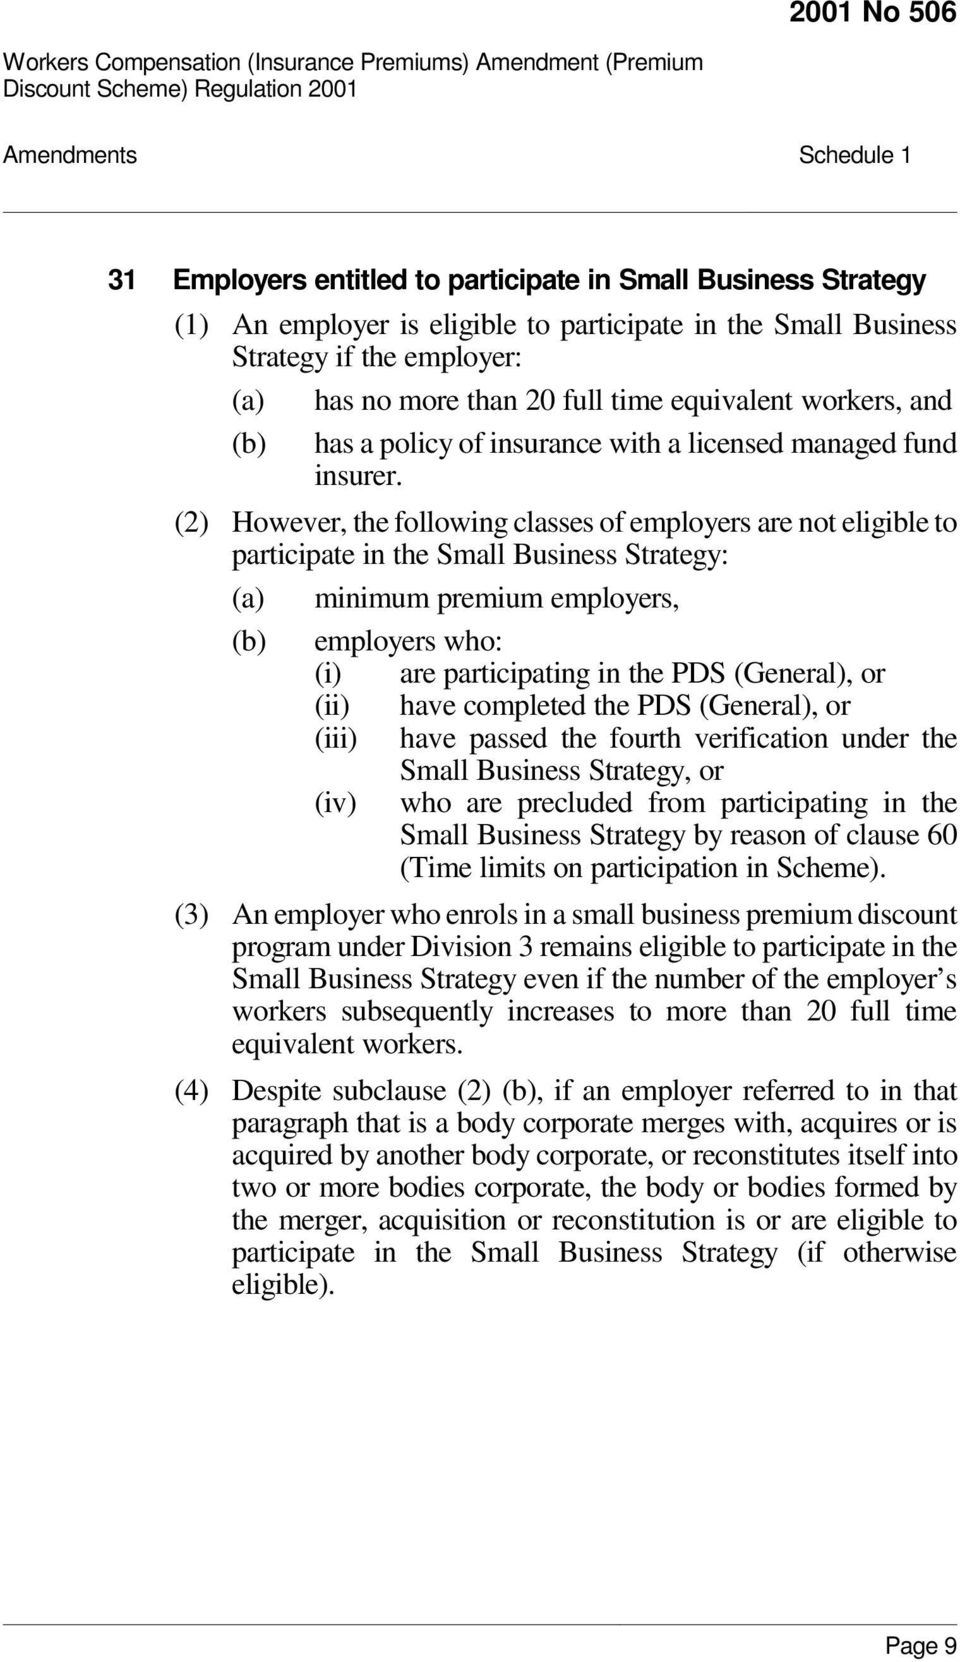 (2) However, the following classes of employers are not eligible to participate in the Small Business Strategy: (a) minimum premium employers, (b) employers who: (i) are participating in the PDS